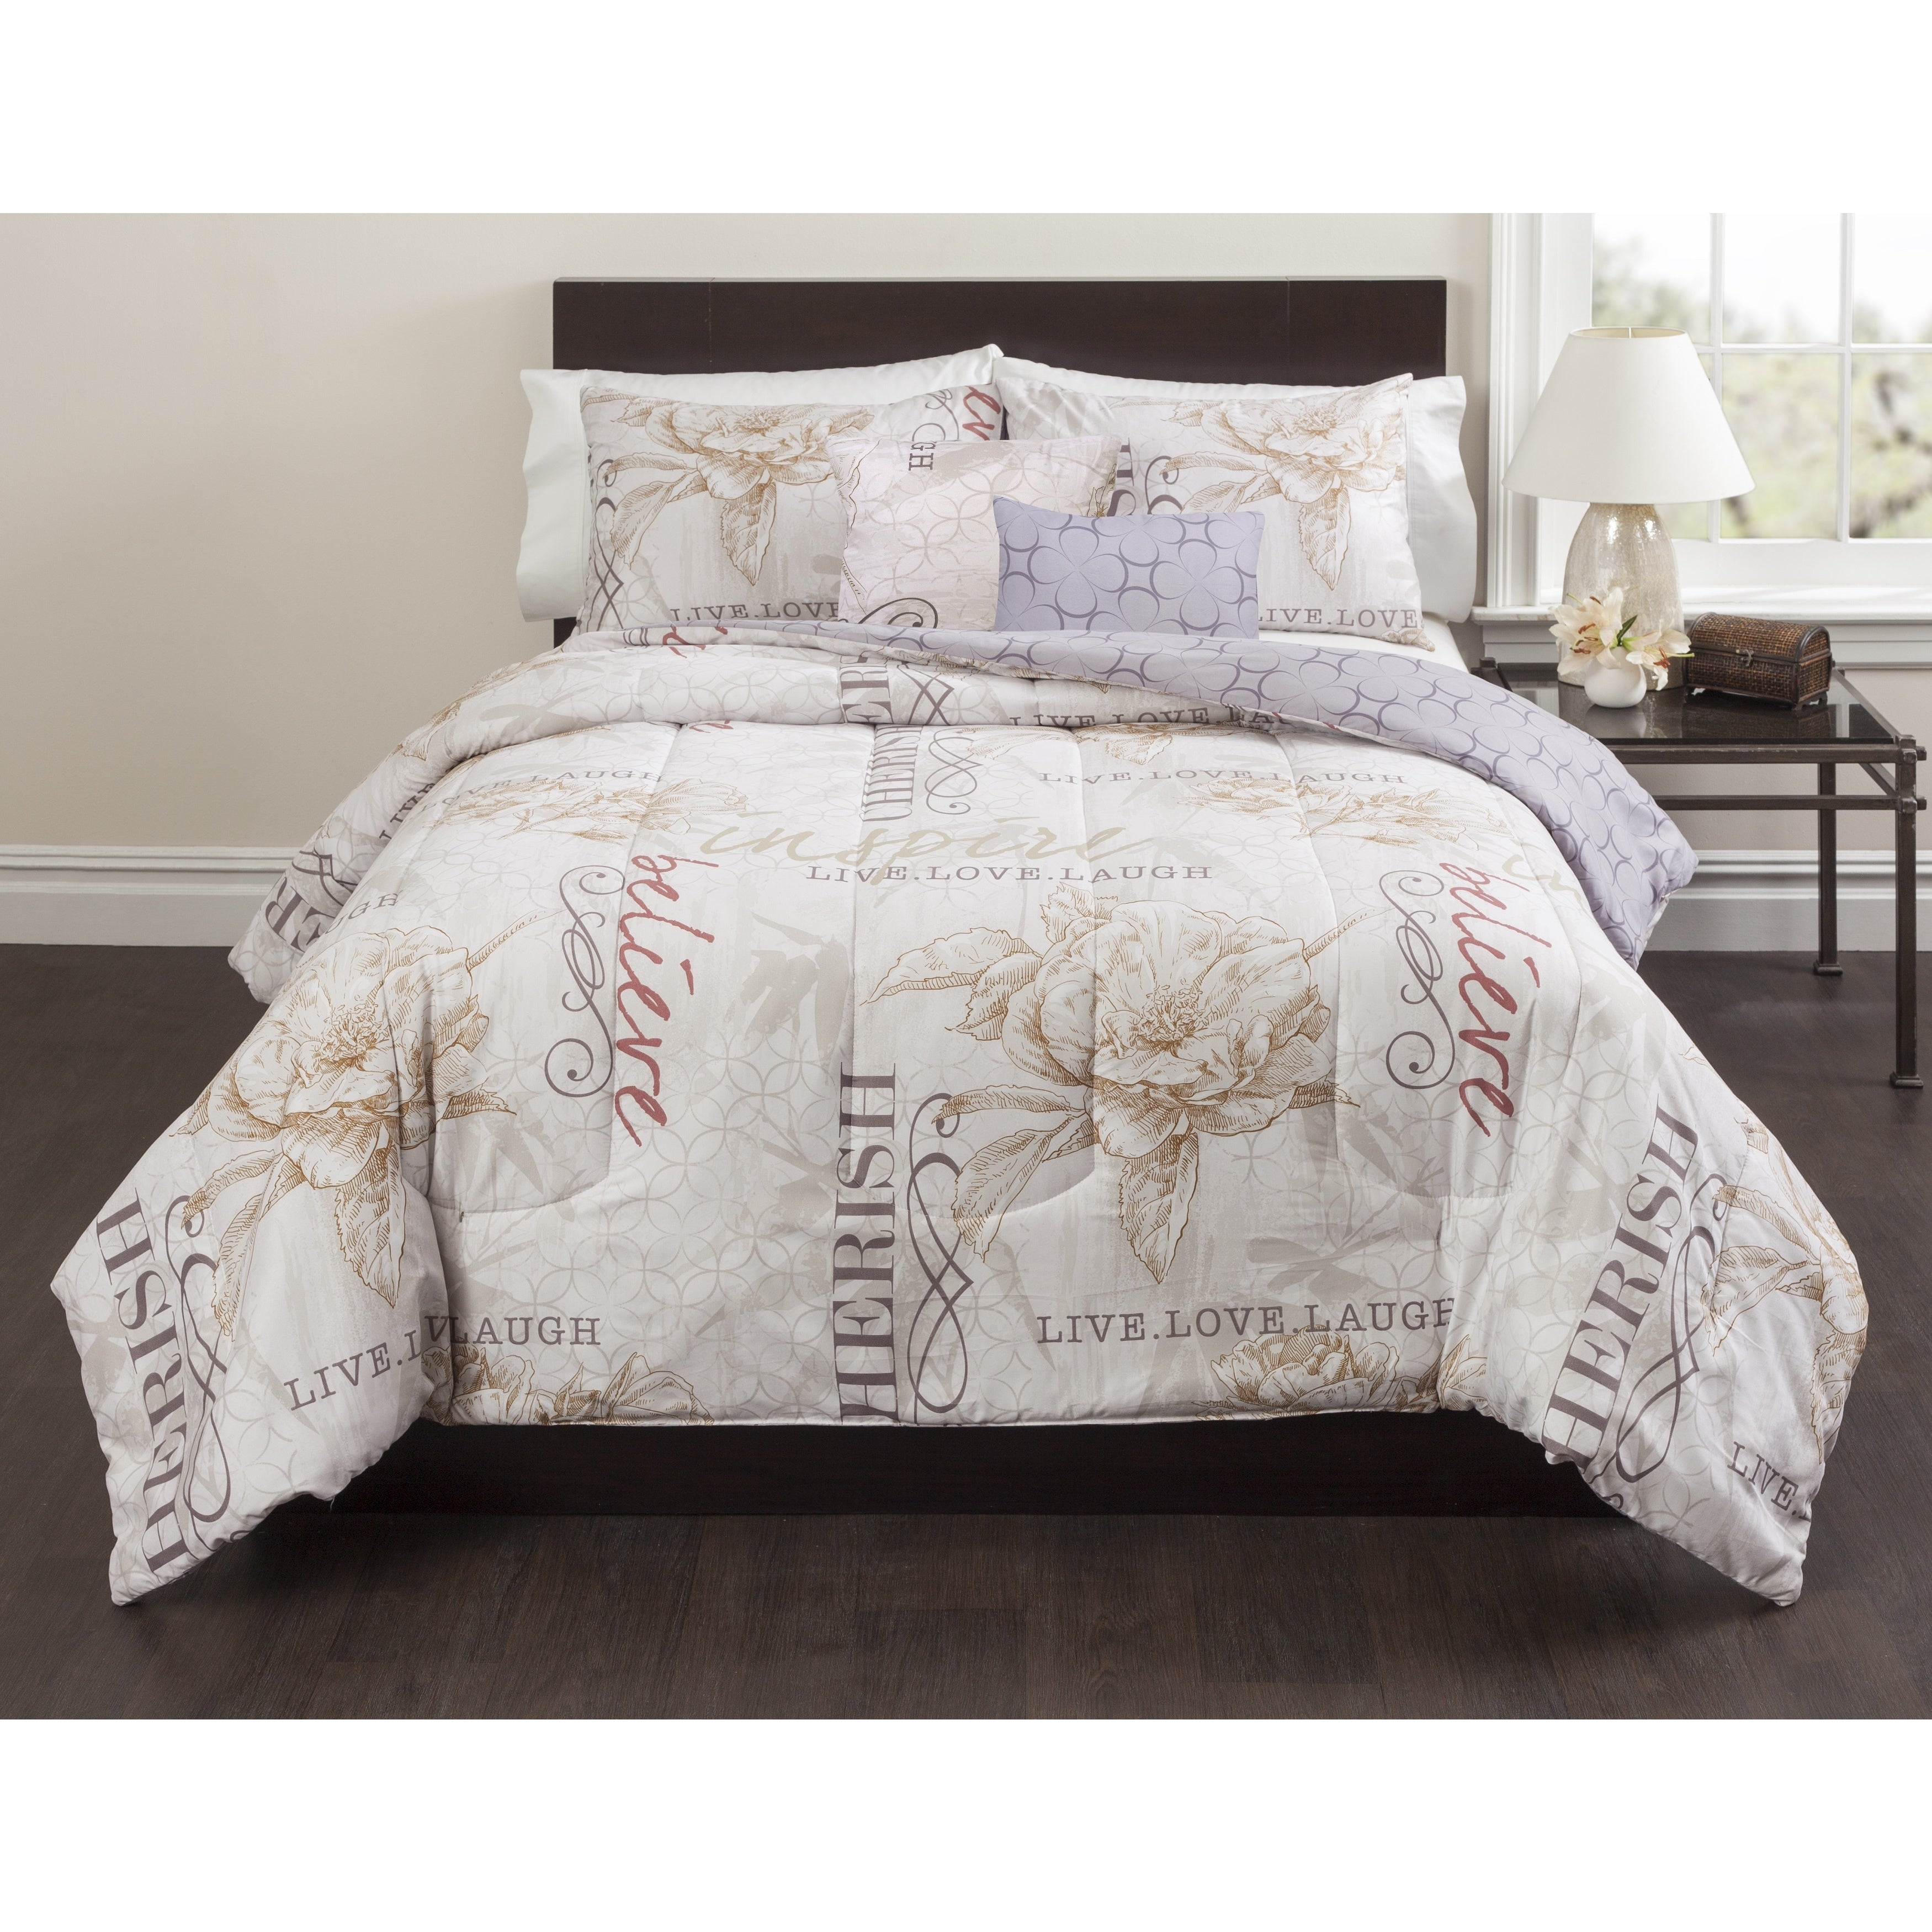 Casa Live Laugh Love 5-piece Comforter Set - Free Shipping Today ...